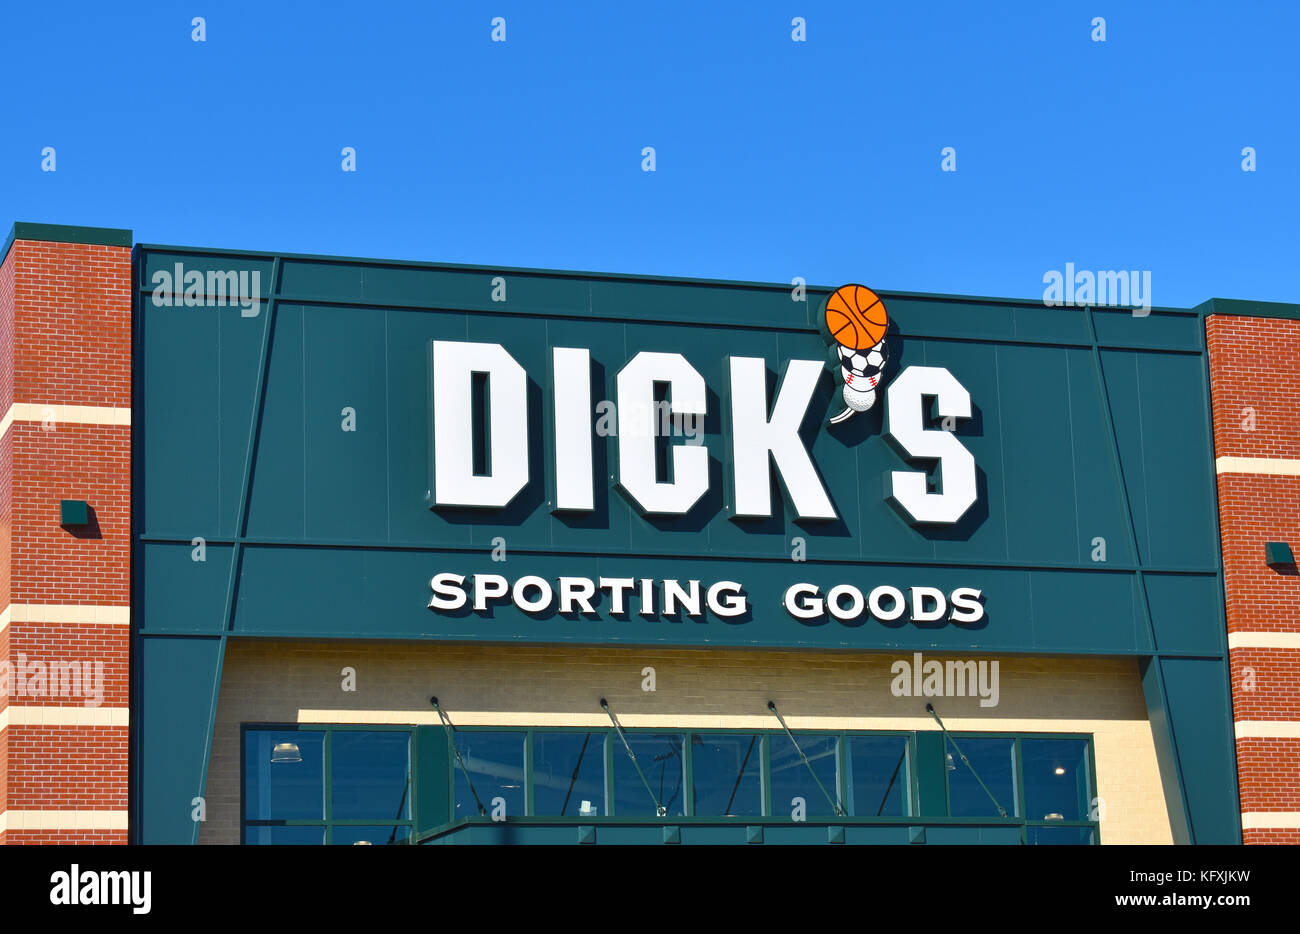 Dick's Sporting Goods store at the Bellis Fair Mall in Bellingham, Washington. - Stock Image